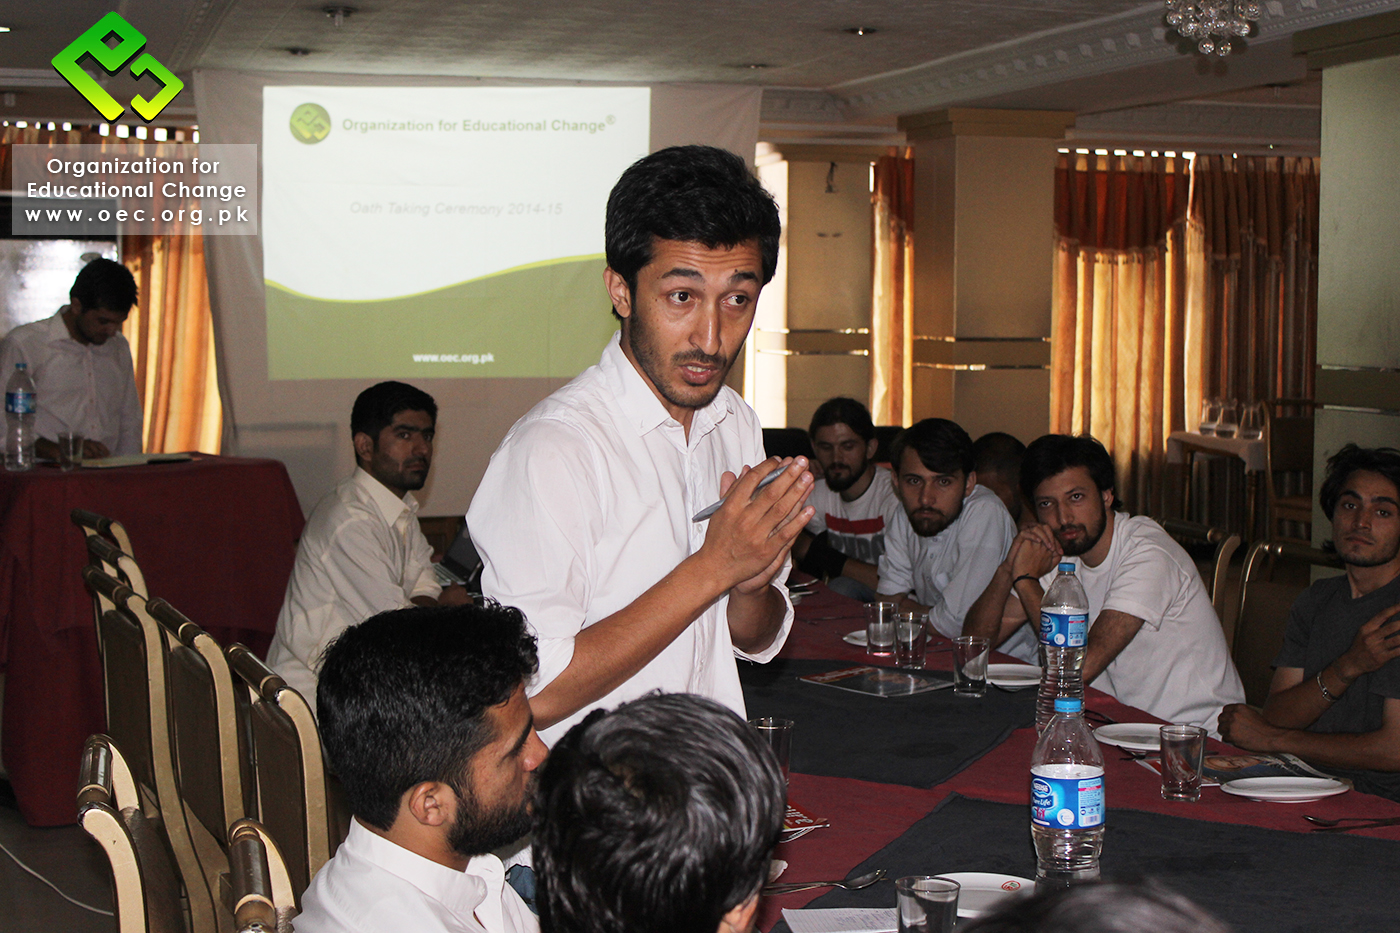 Syed Naveed Shah, the former President, talking to the audience.